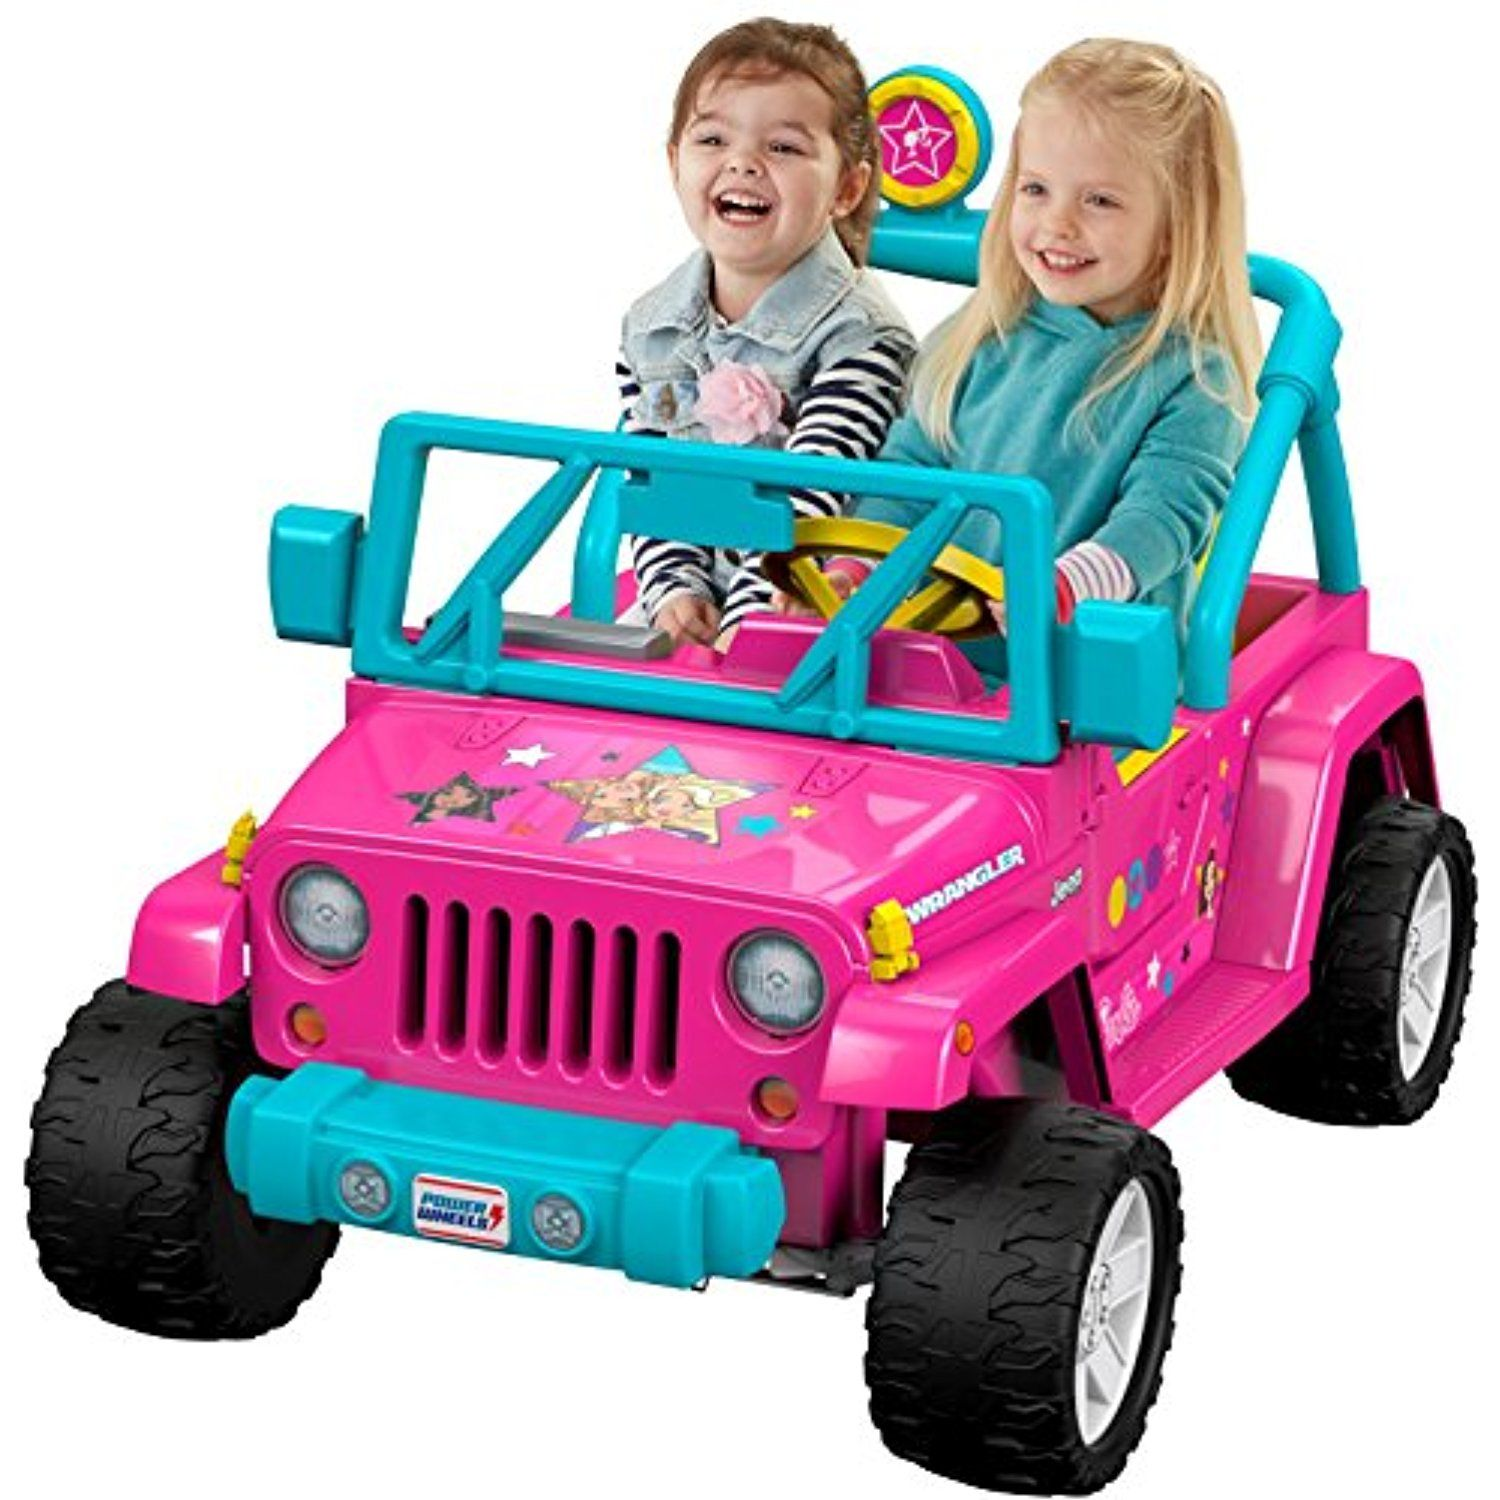 Power Wheels Barbie Jeep Wrangler You Can Get Additional Details At The Image Link This Is An Aff With Images Power Wheels Jeep Wrangler Barbie Power Wheels